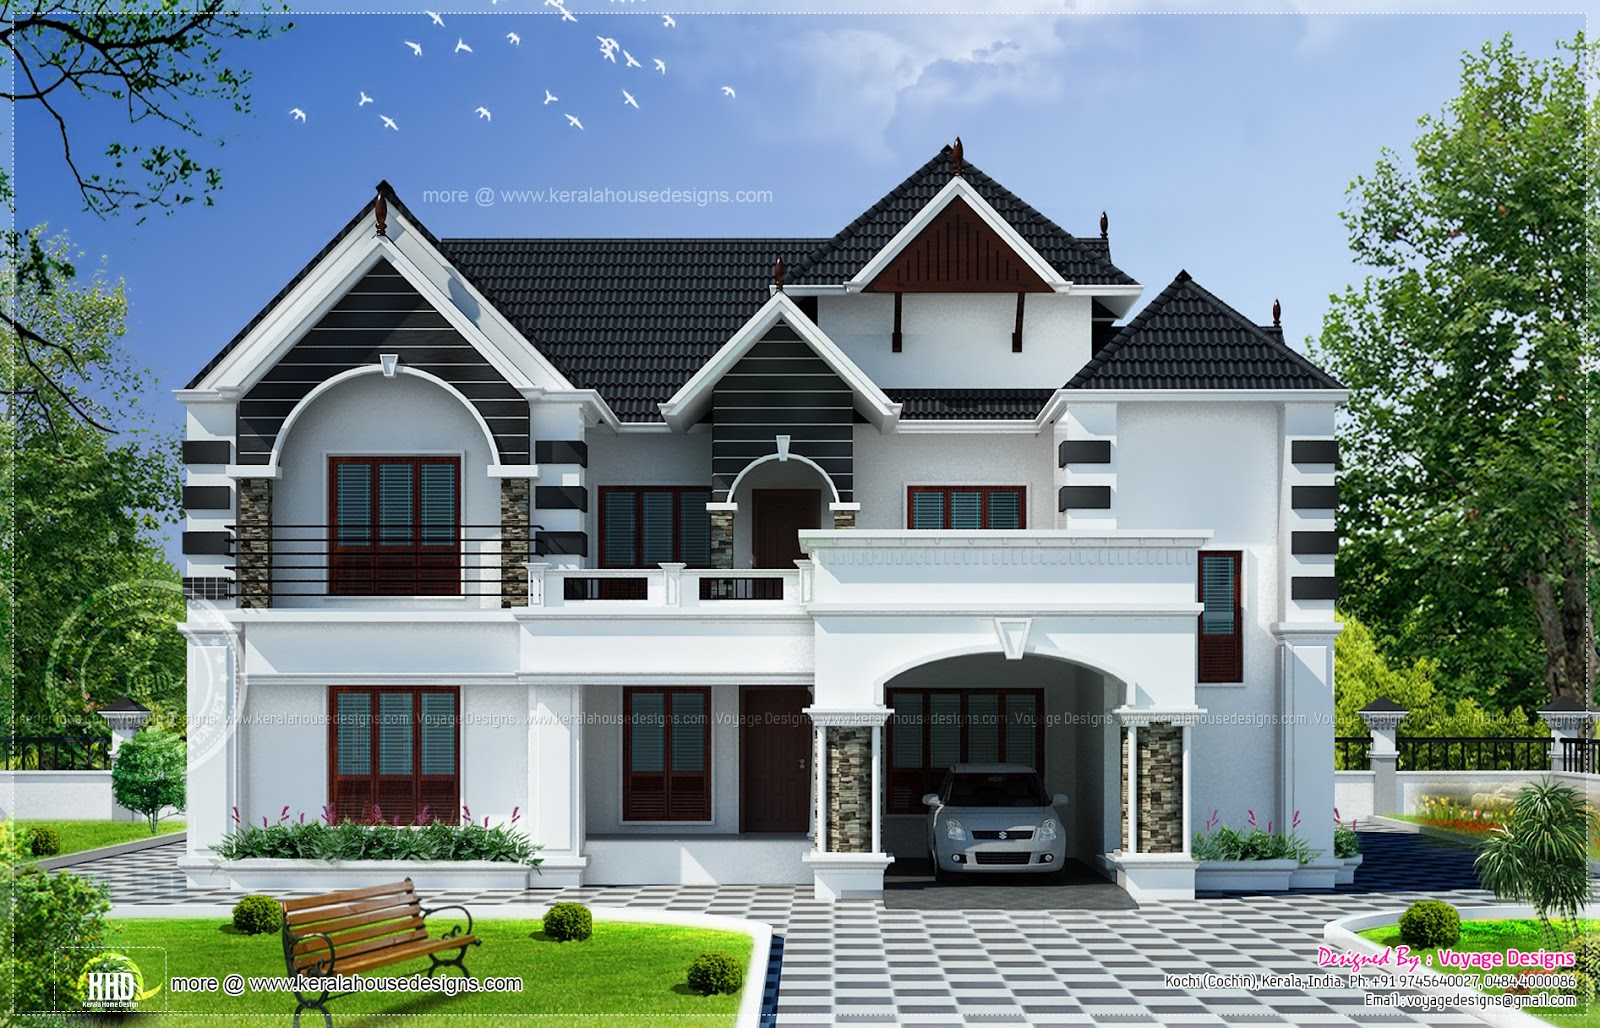 4 bedroom colonial style house kerala home design and ForBuilding Styles For Homes